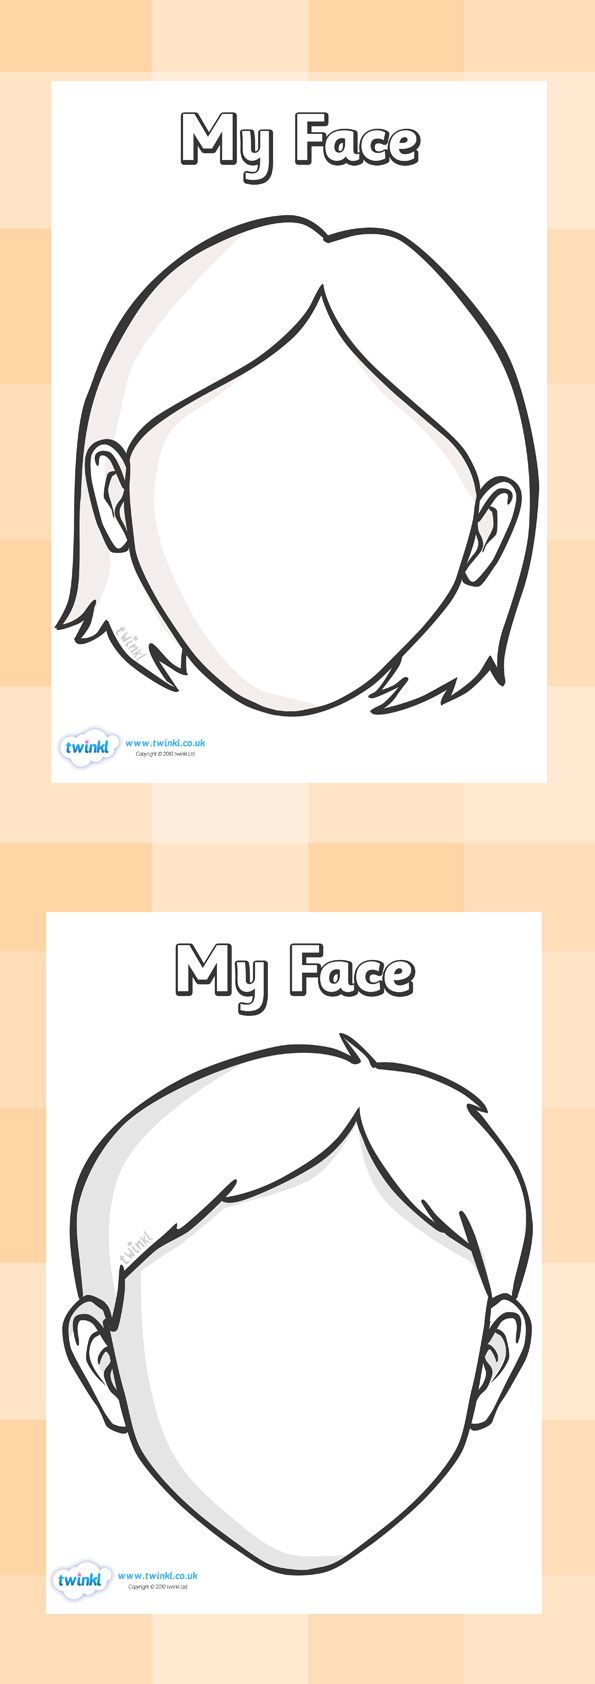 Twinkl Resources >> Blank Face Templates  >> Classroom printables for Pre-School, Kindergarten, Elementary School and beyond! Topics, Ourselves, Face, Activities